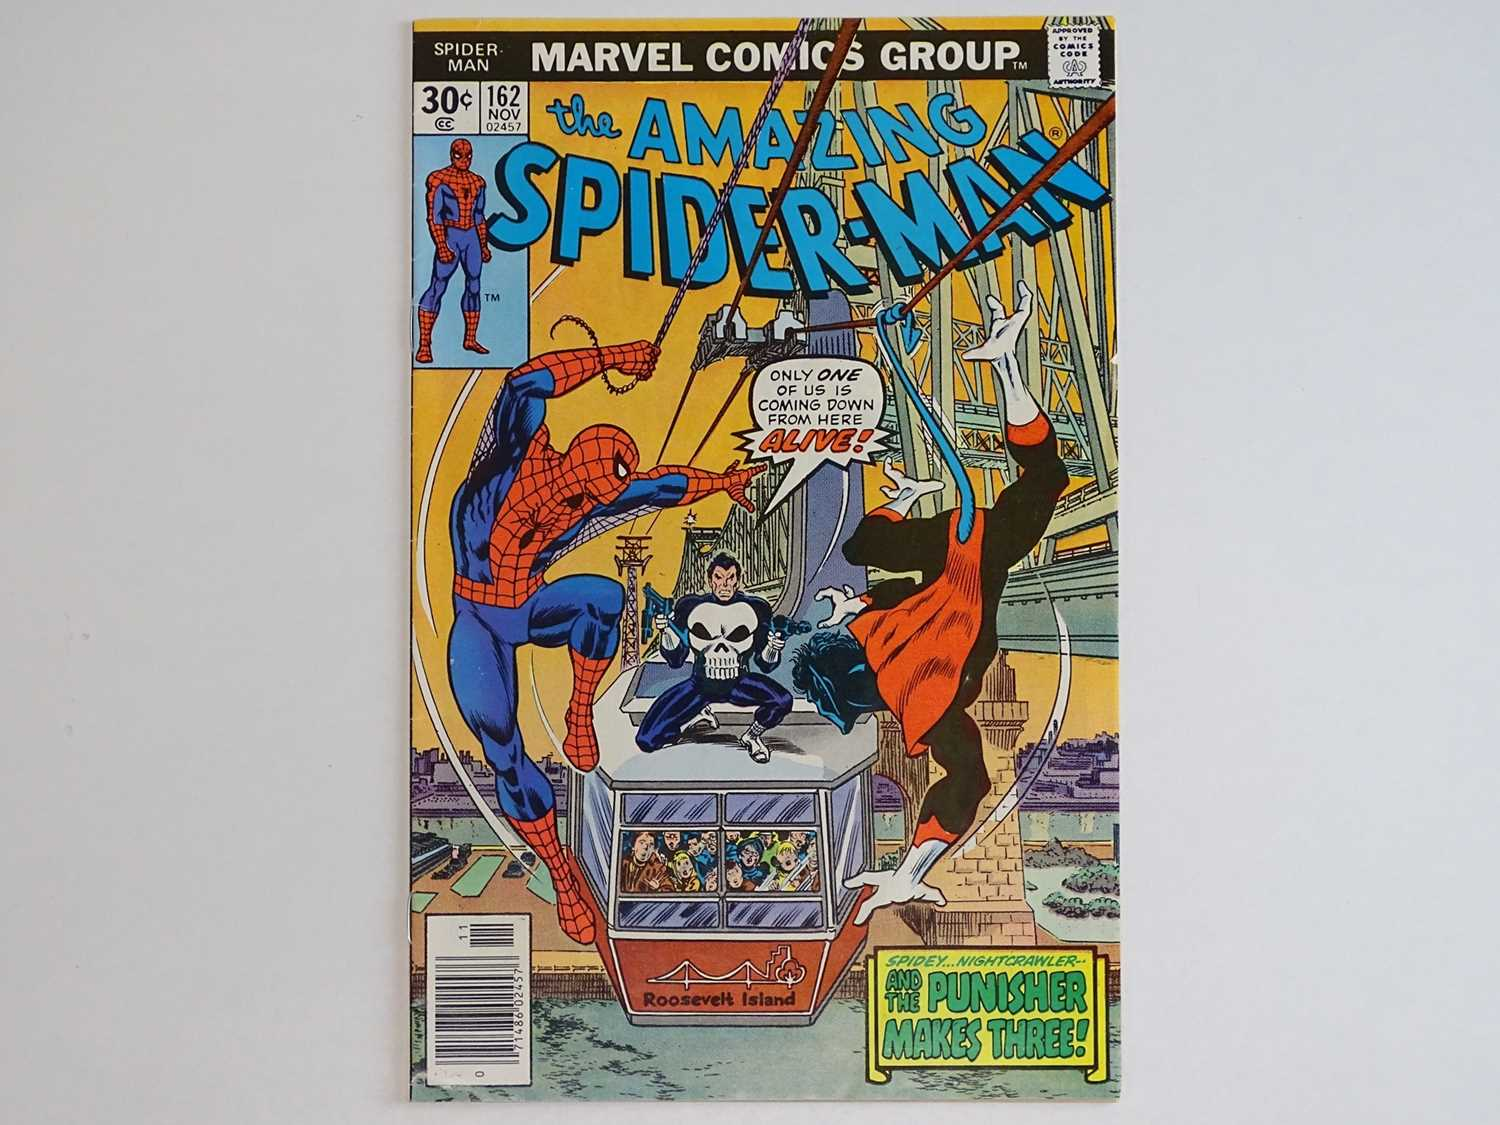 AMAZING SPIDER-MAN #162 - (1976 - MARVEL) - First full appearance of Jigsaw and Dr. Maria